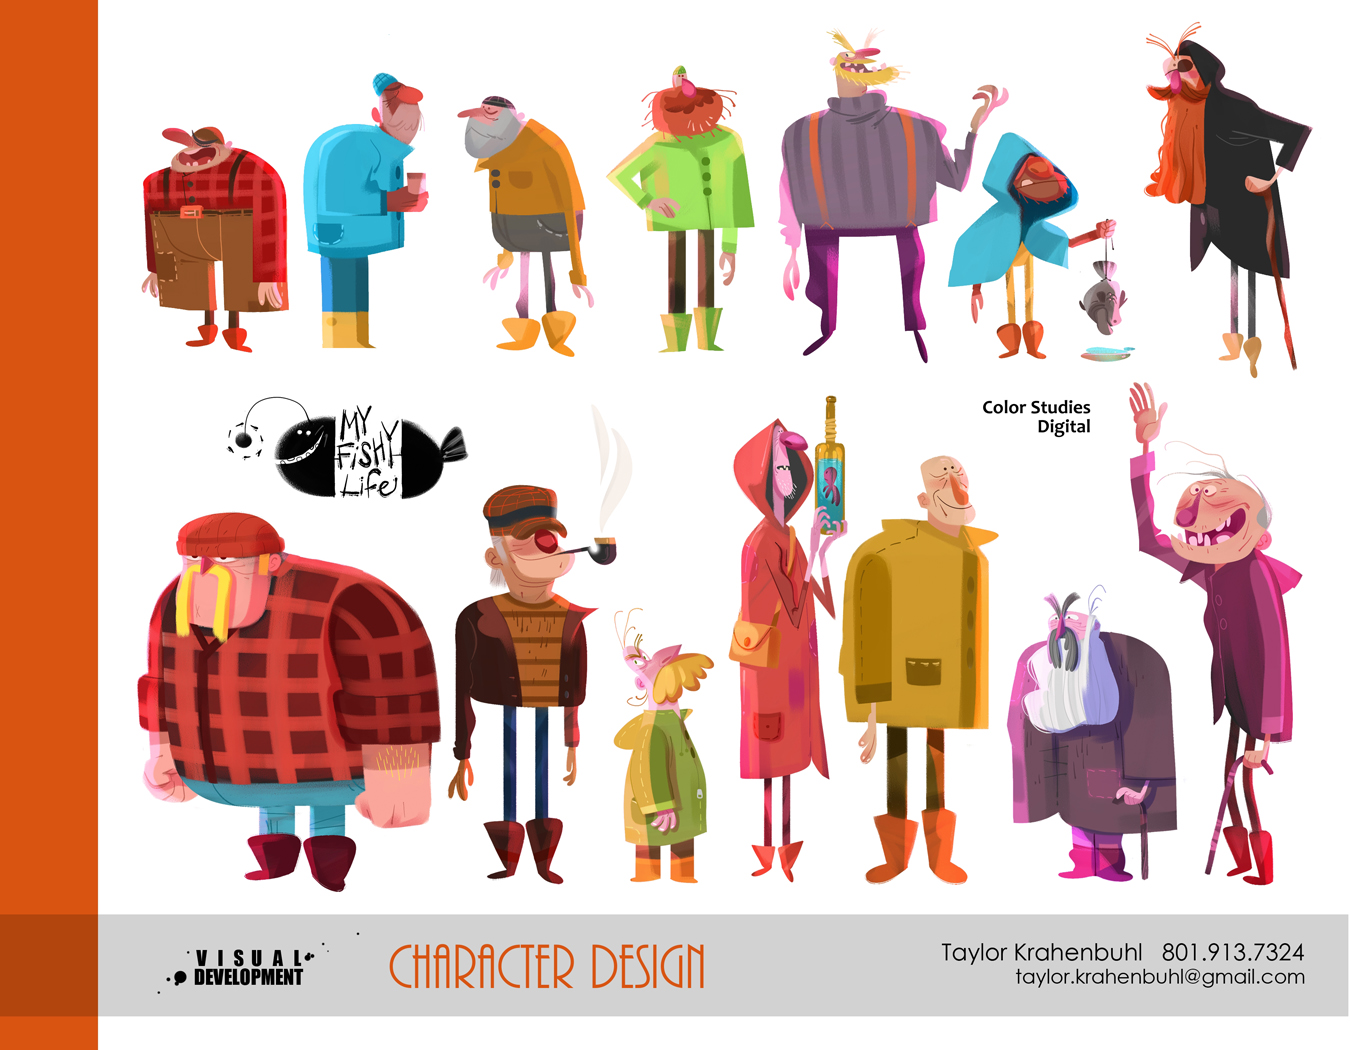 Character Design Visual Development Portfolio : Visual development portfolio taylor krahenbuhl